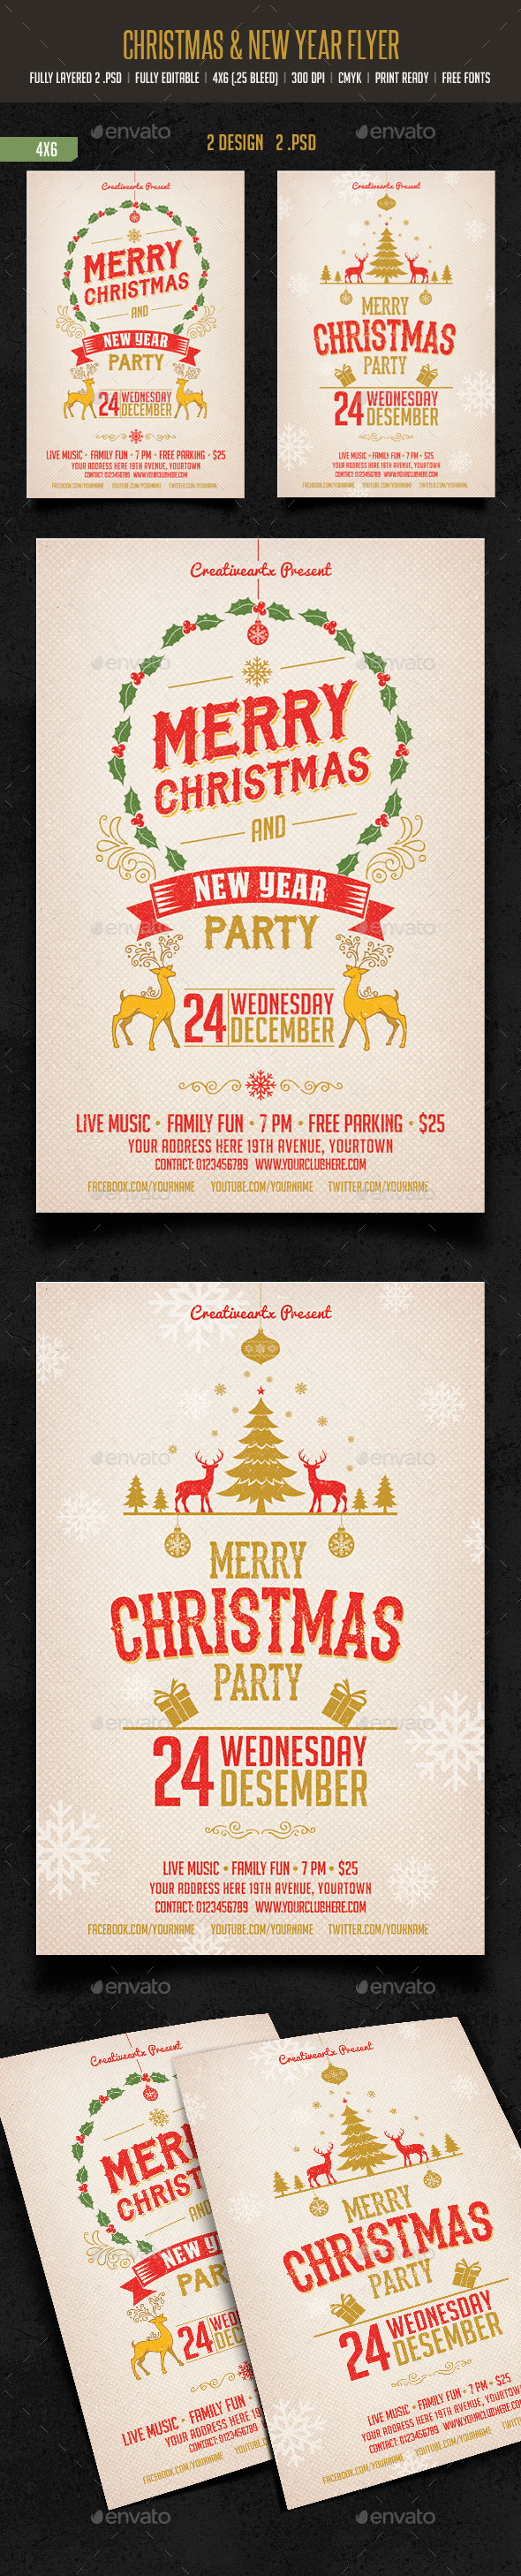 GraphicRiver Merry Christmas & New Year Party 9533129